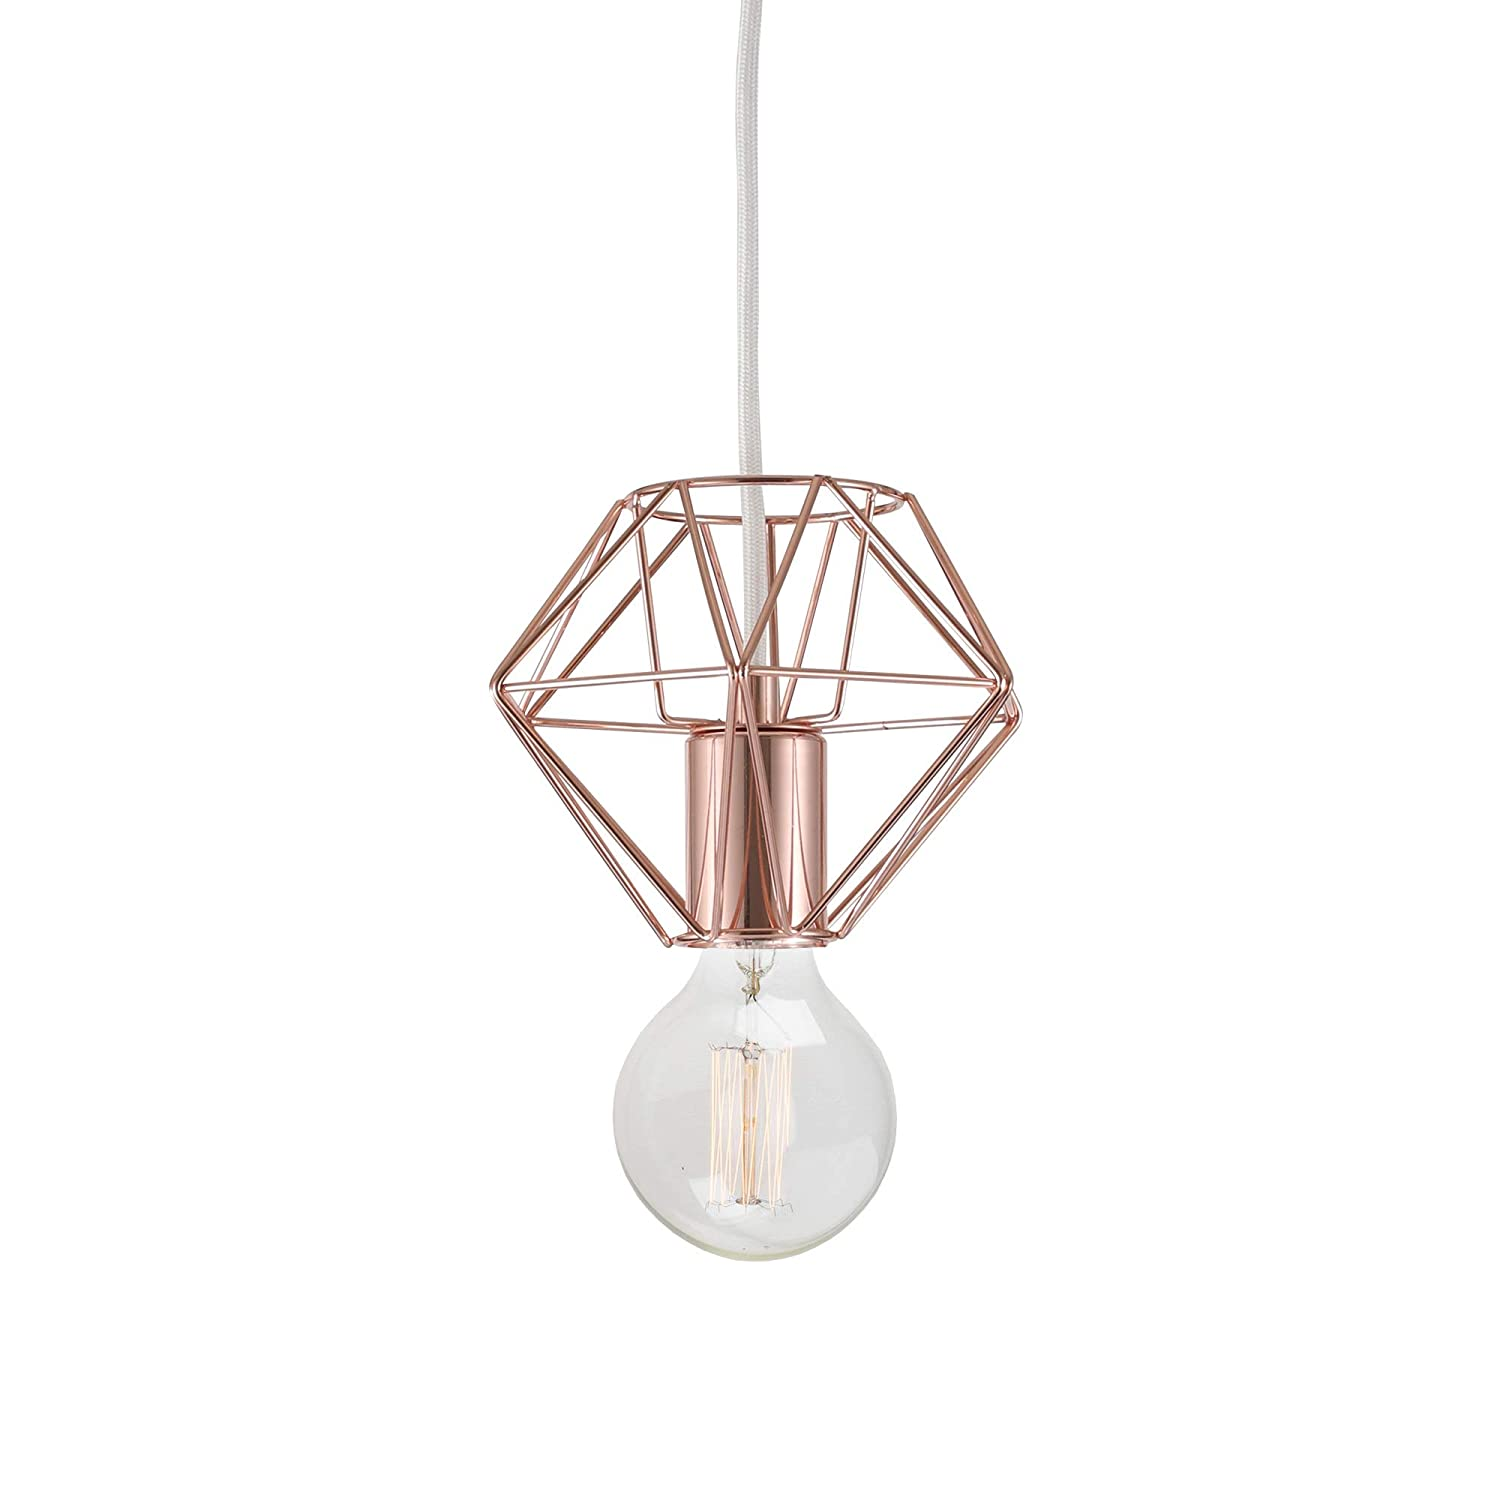 Hanging Modern Chandelier 16FT White Fabric Cord with in-Line Switch Rose Gold Finish Can Be Used as Table Lamp BRIGHTTIA Plug-in Swag Industrial Pendant Light with Diamond Wire Cage Shade